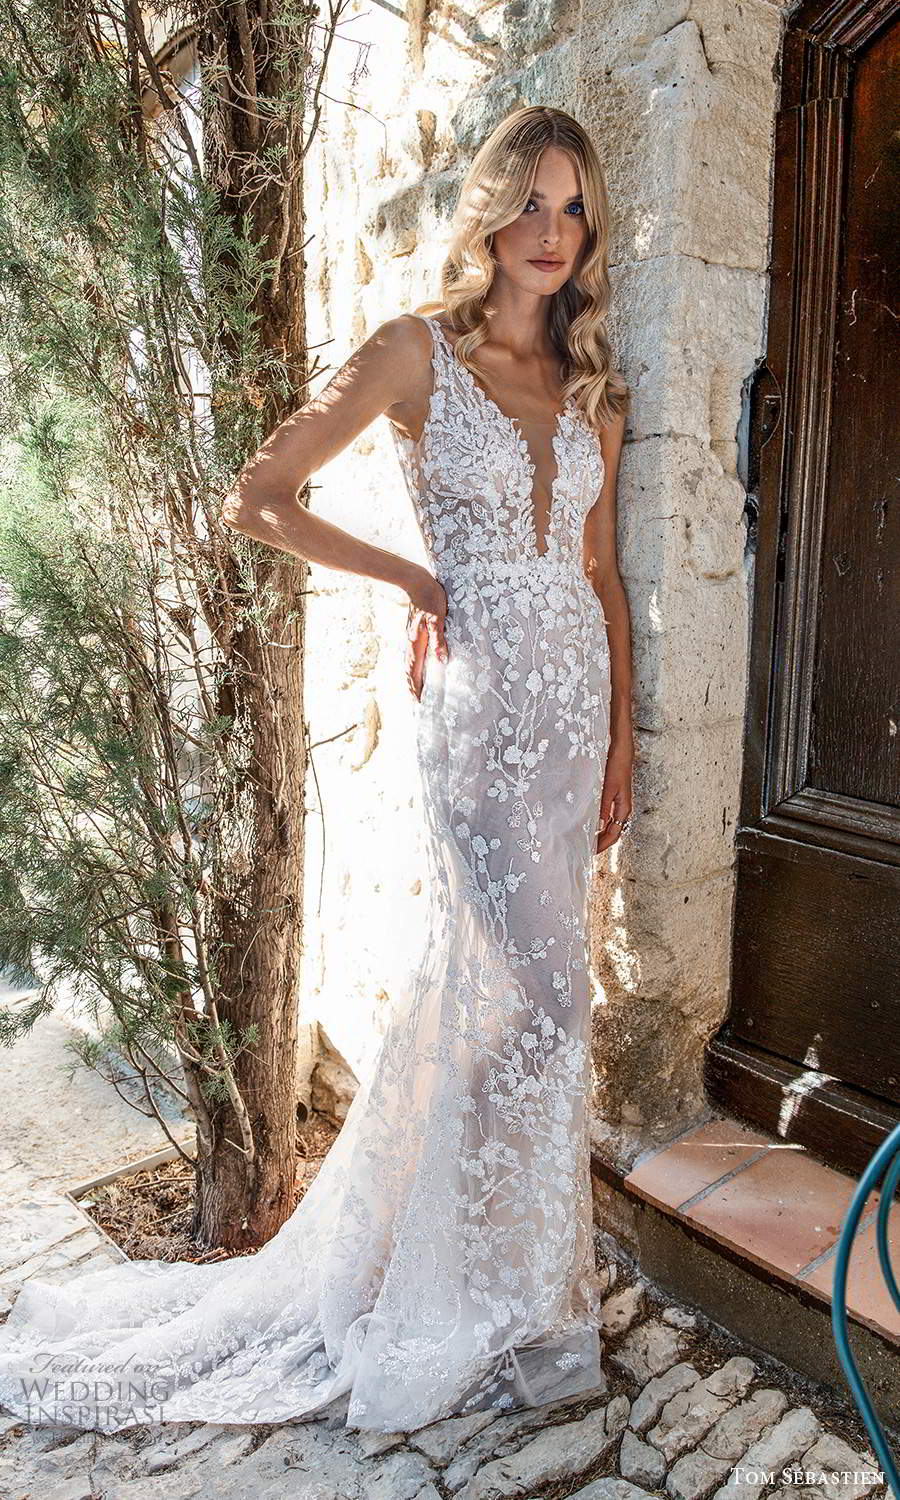 tom sebastien 2021 bridal provence sleeveless straps plunging v neckline fully embellished lace wedding dress sweep train (3) mv